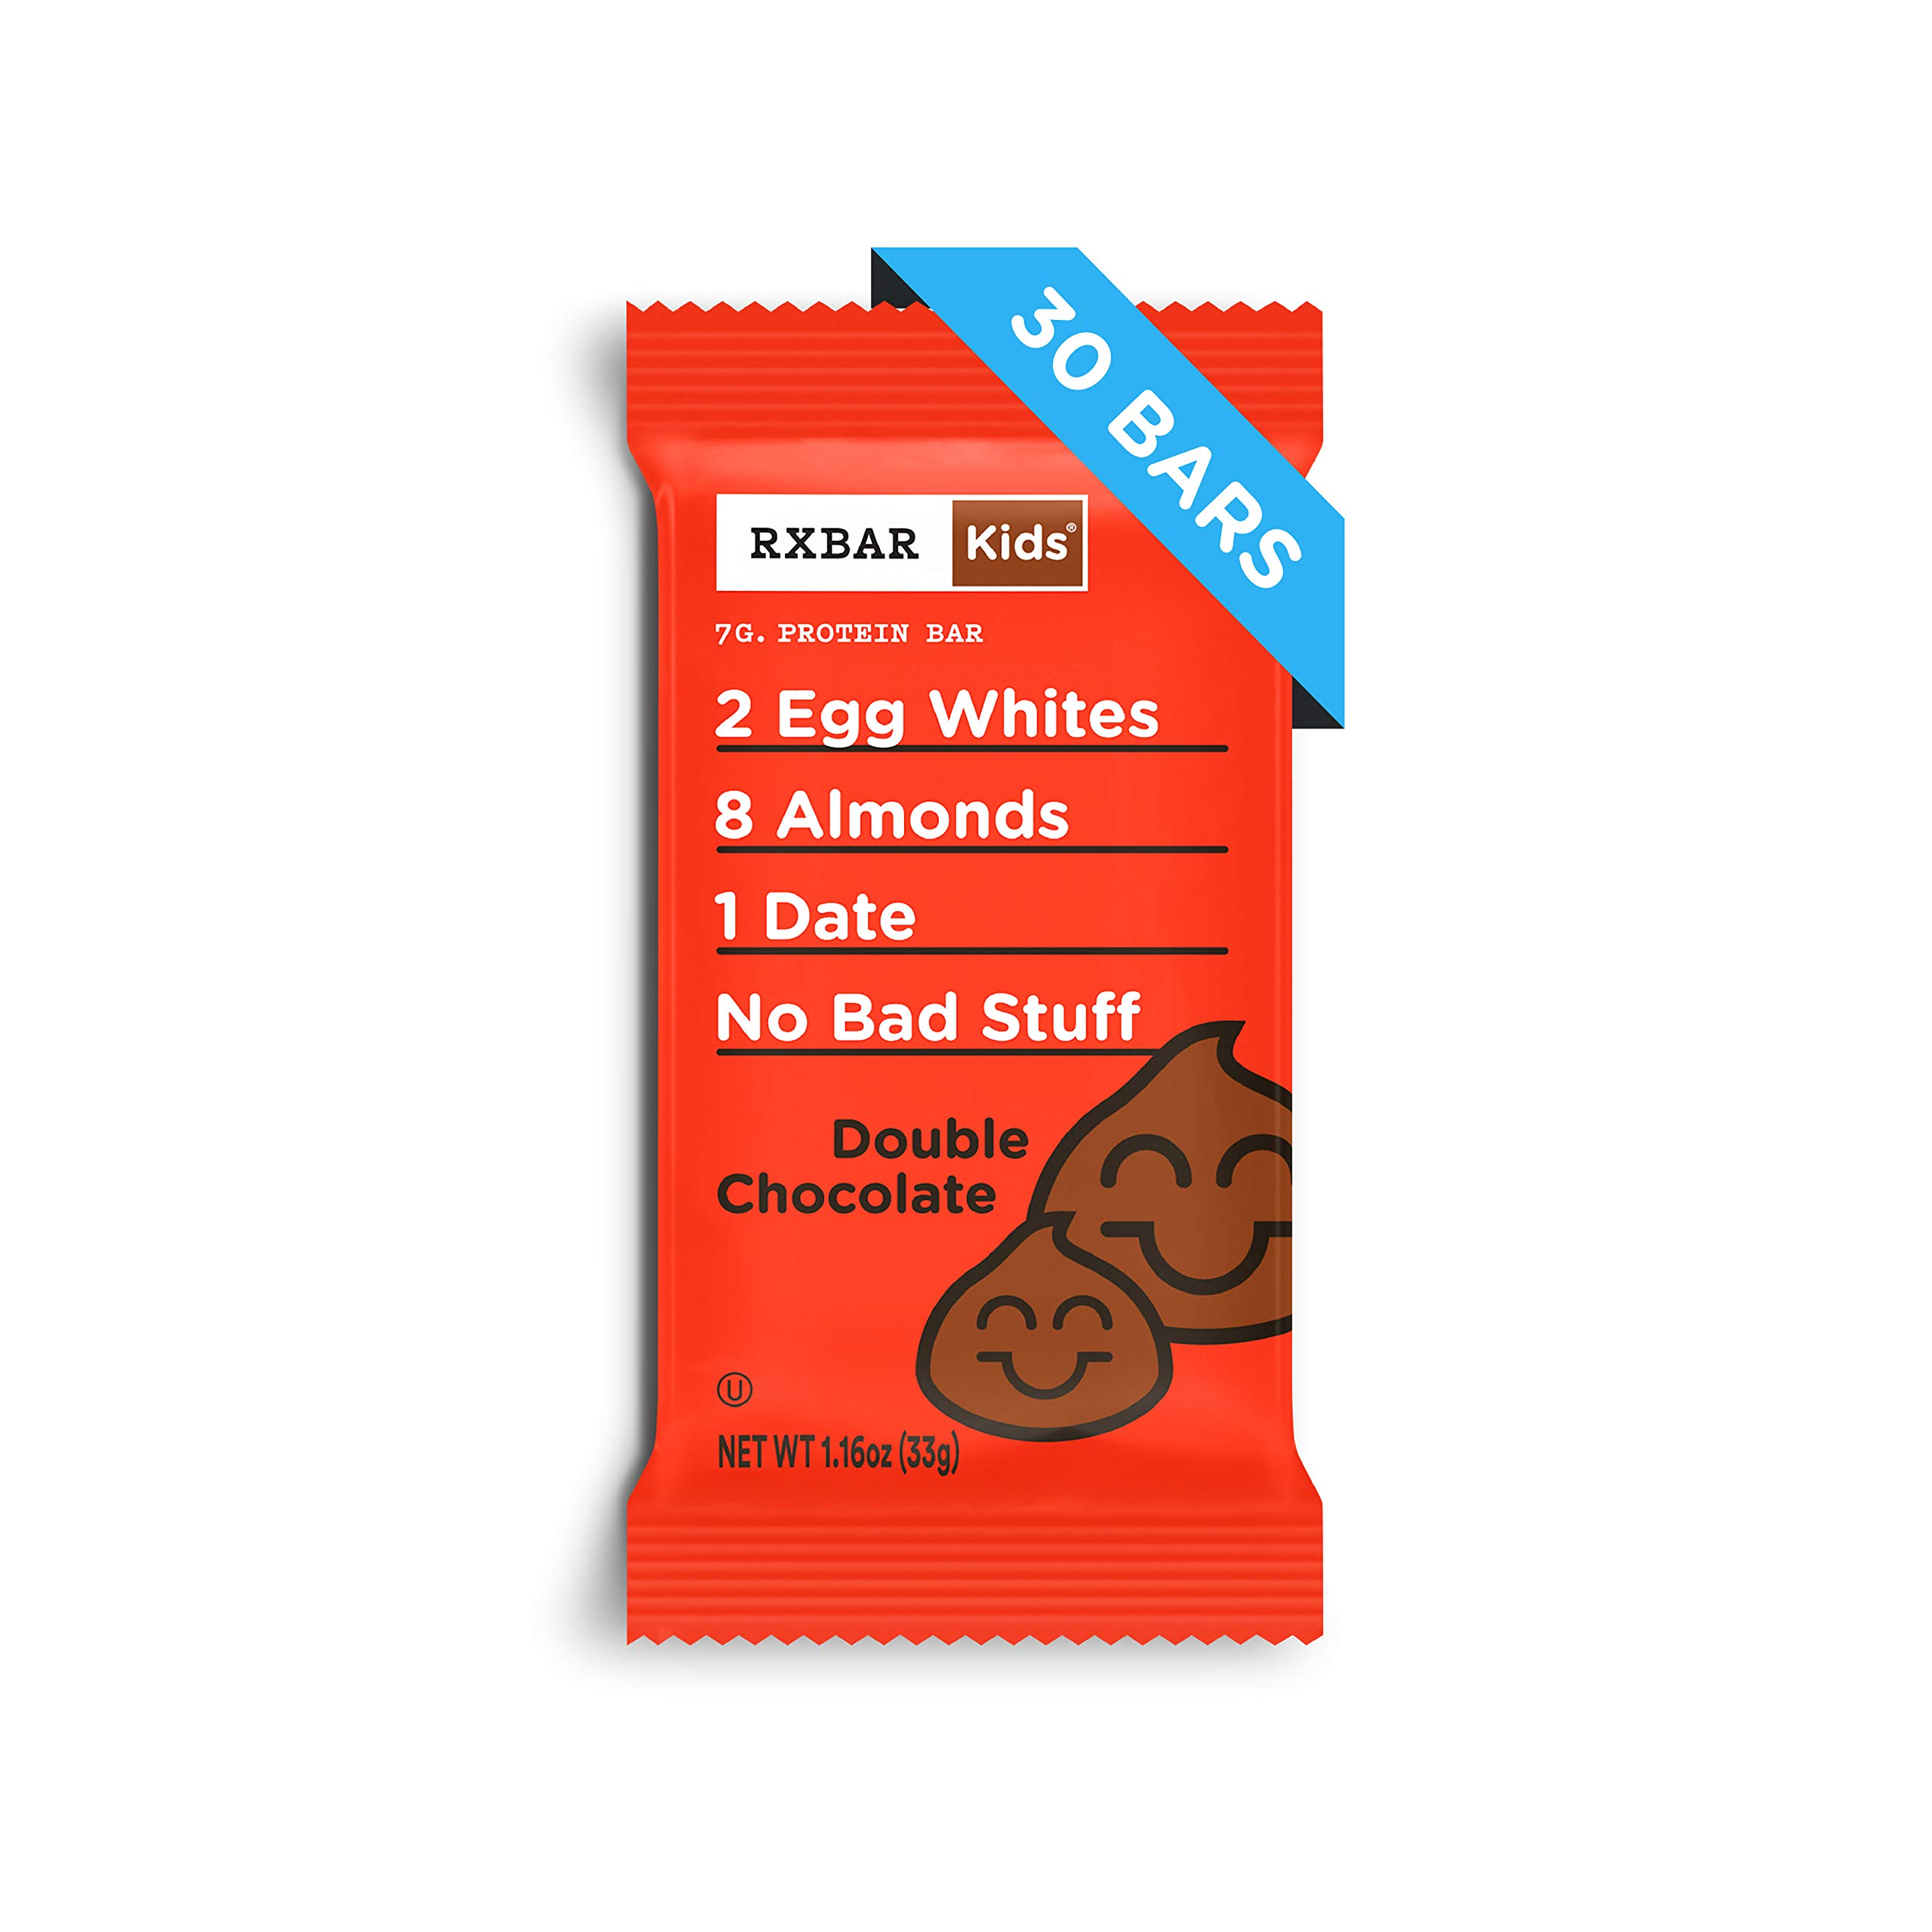 RXBAR Kids Real Food Protein Bar, Double Chocolate, Gluten Free, 1.16oz Bars, 30 Count